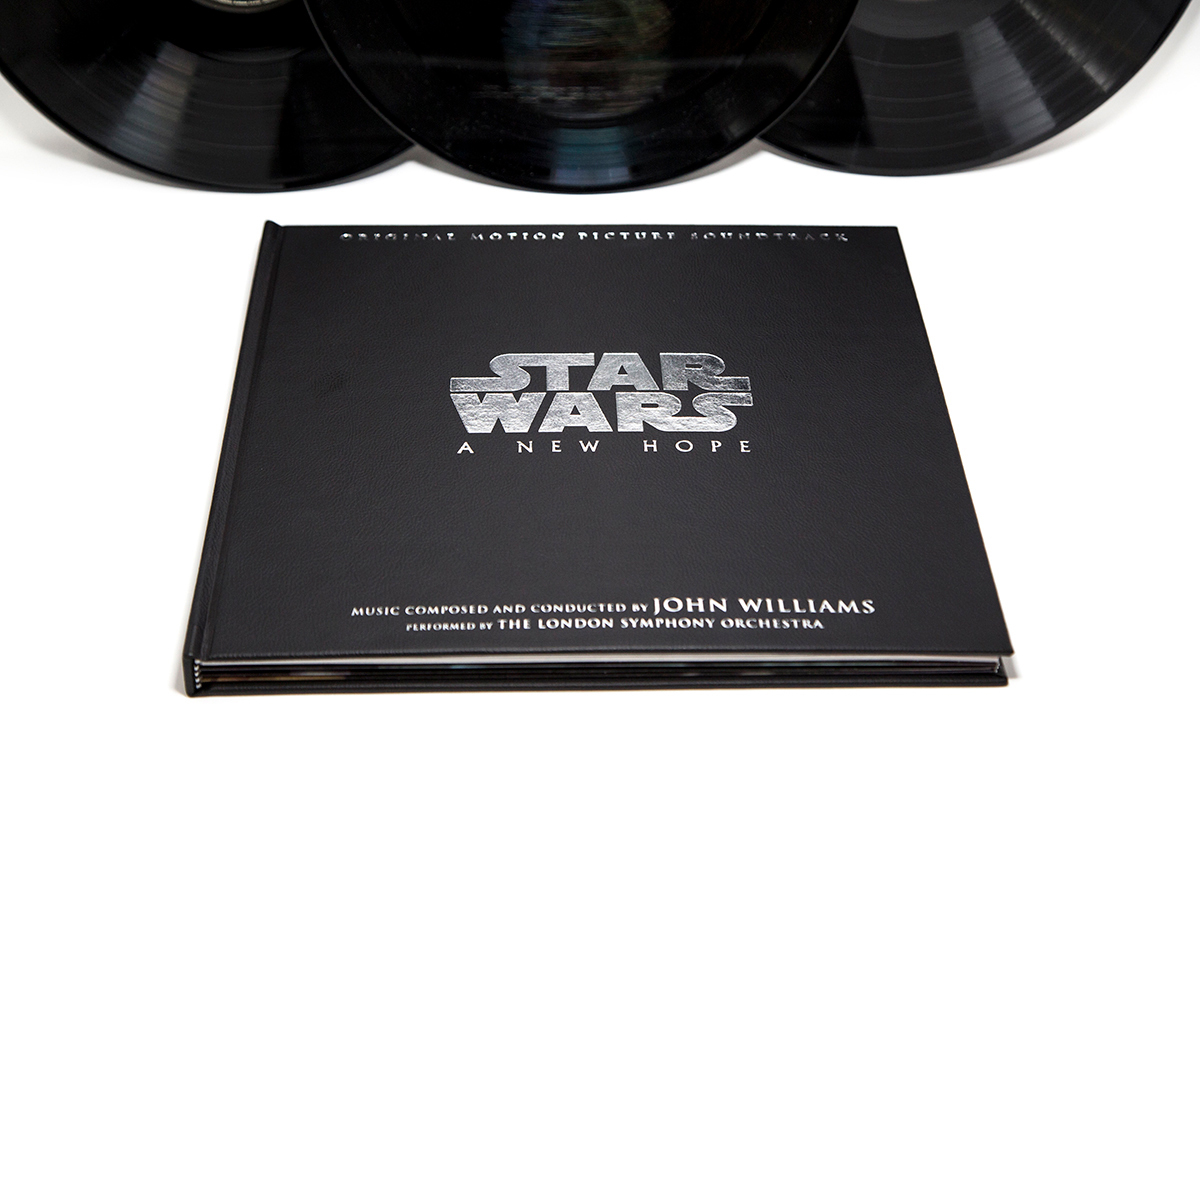 Star Wars: A New Hope 40th Anniversary Box Set